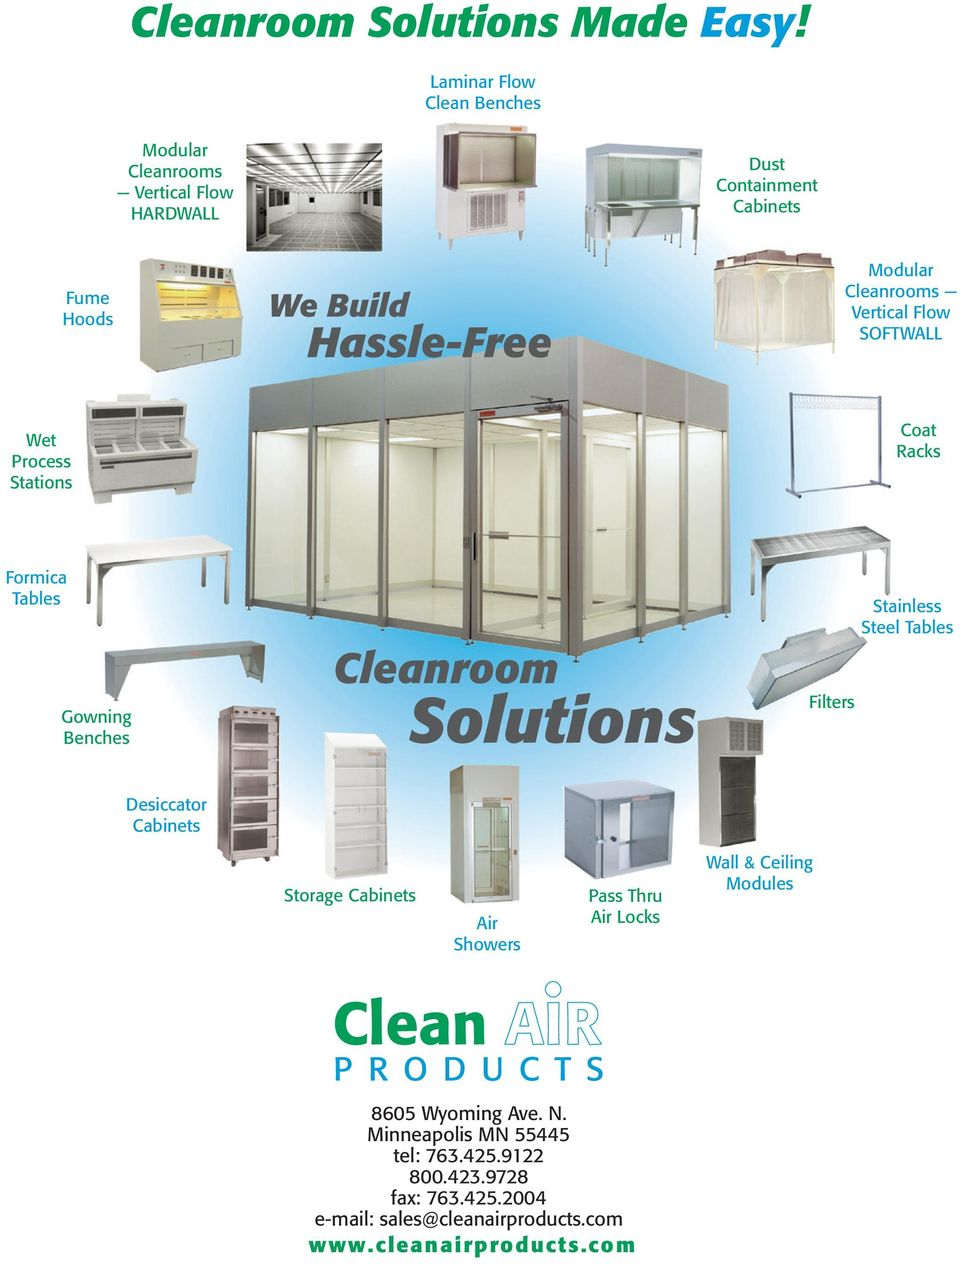 Series 18 Pass Thru Air Lock Cleanroom Entry System Pdf 360 Degreepass Diagram Success Modular Cleanrooms Vertical Flow Softwall Wet Process Stations Coat Racks Formica Tables Gowning Benches Solutions